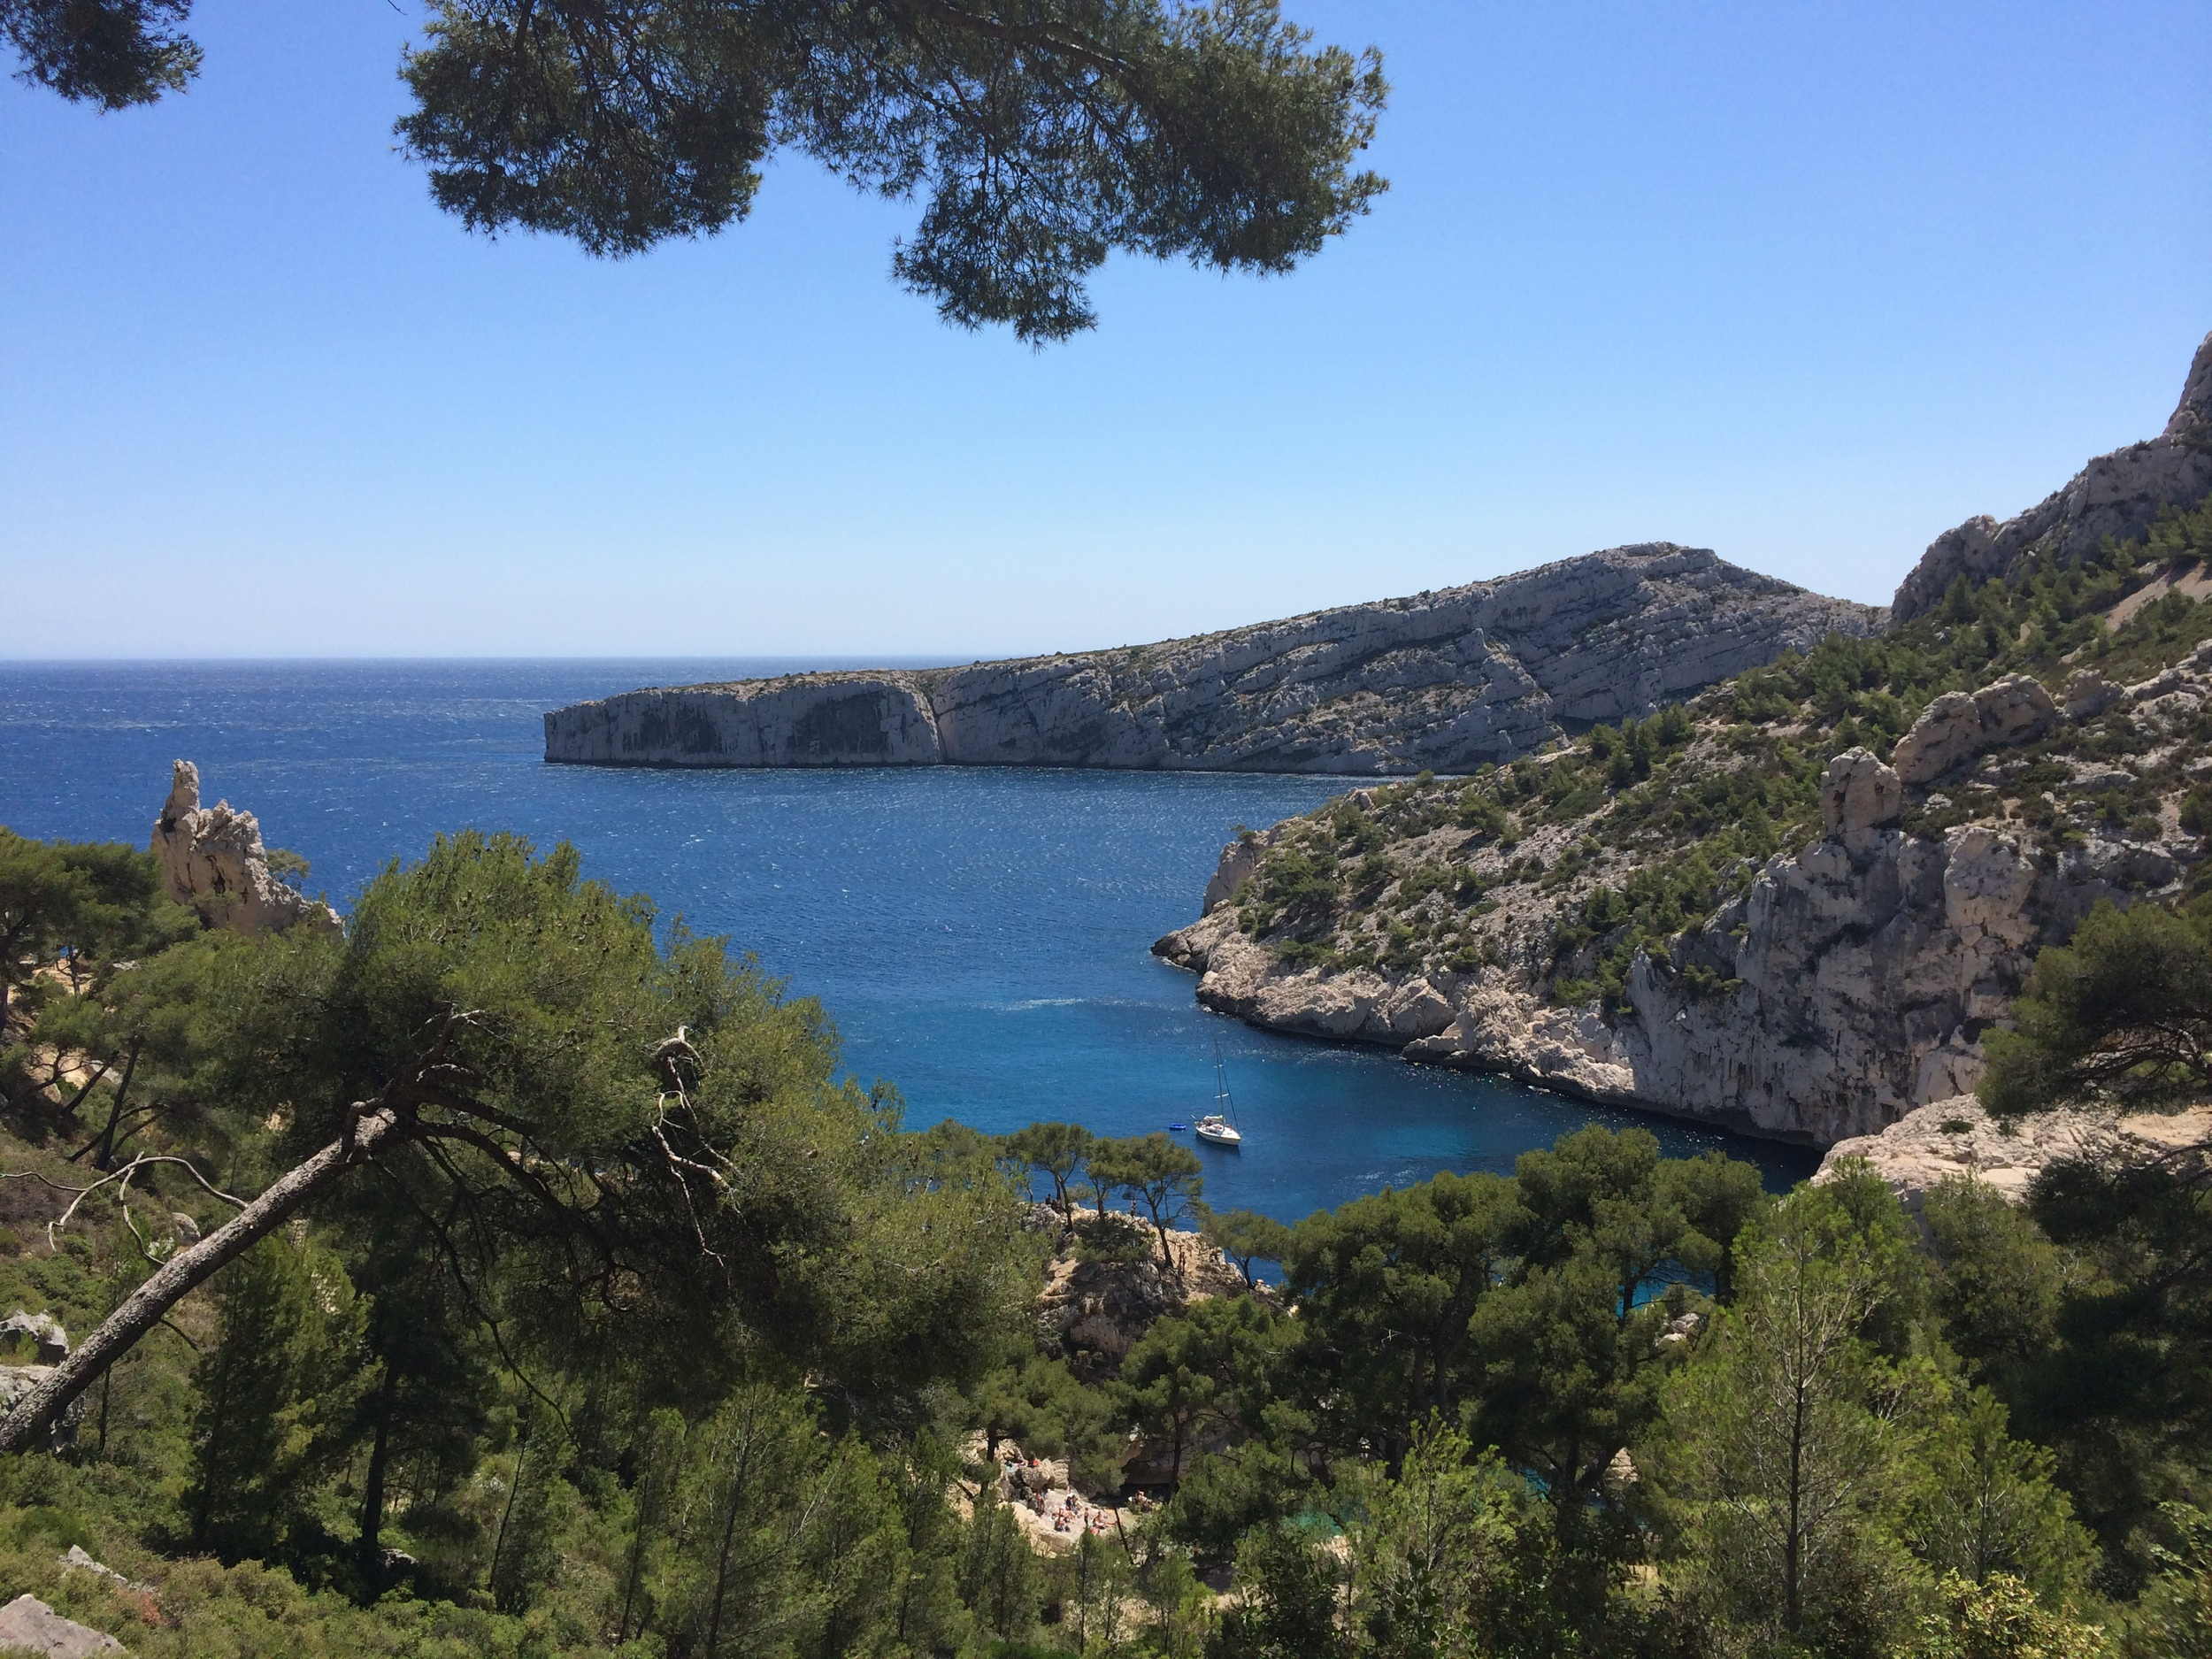 My view during the hike down to the Calanque de Sugiton.